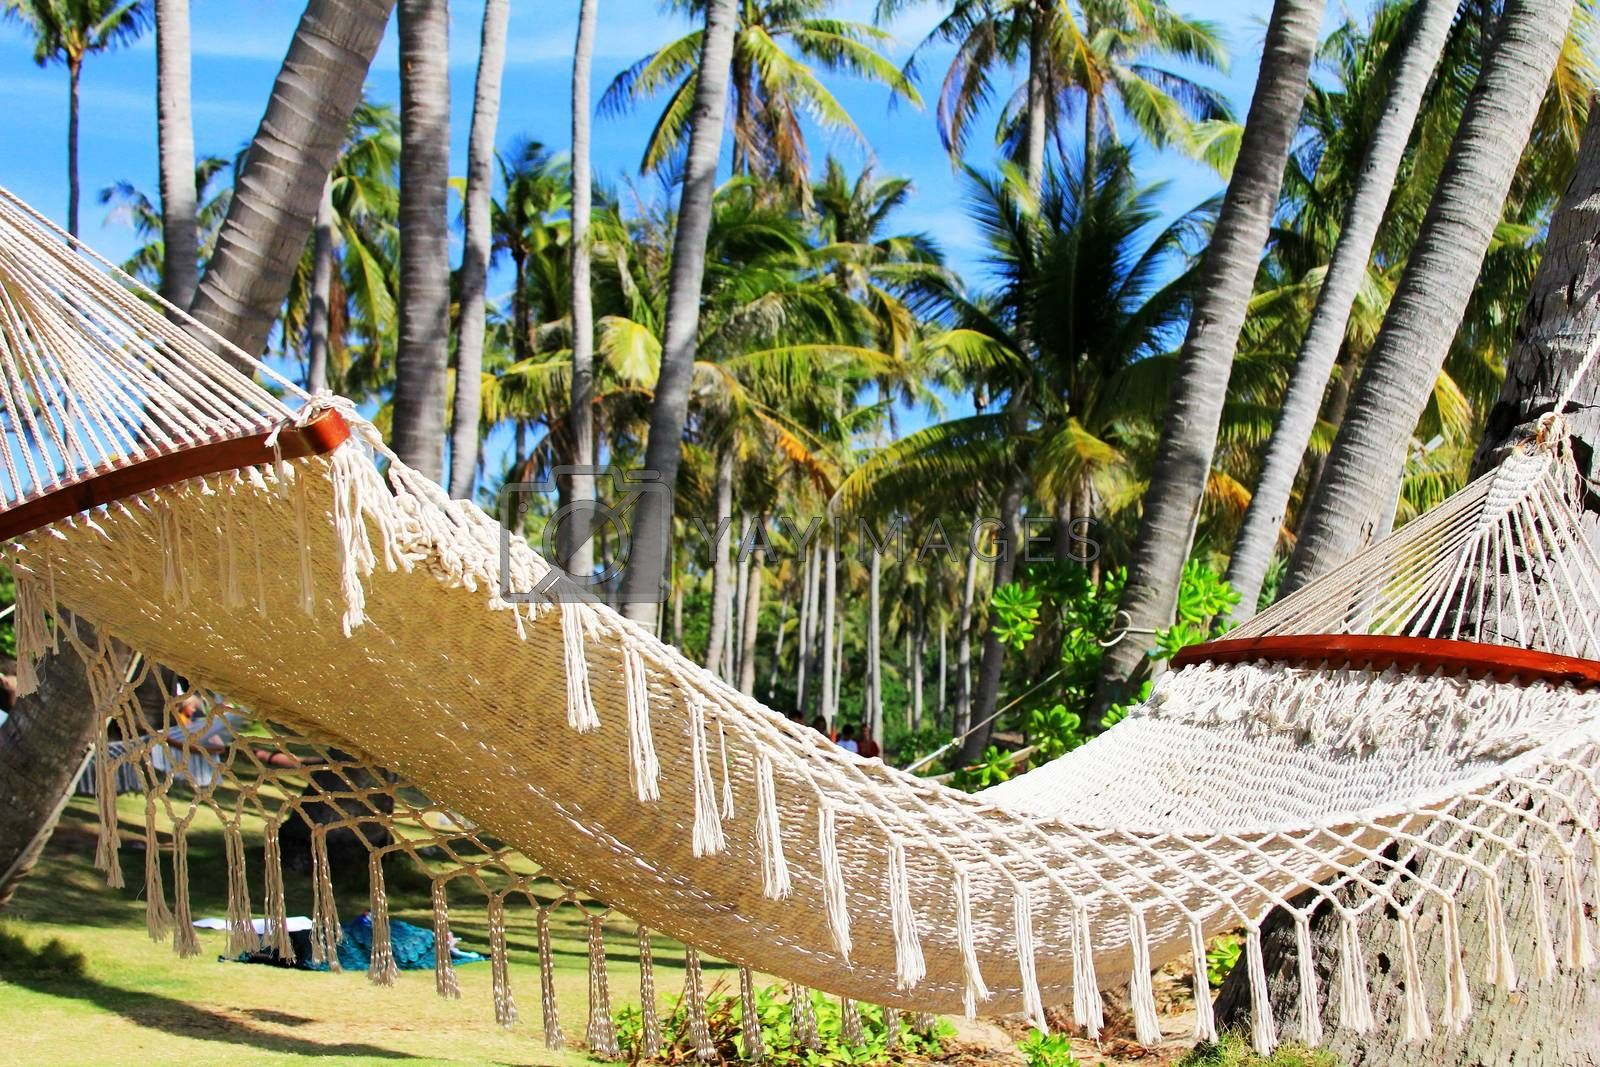 Hammock between two palm trees on the beach. Pineapple island, Vietnam